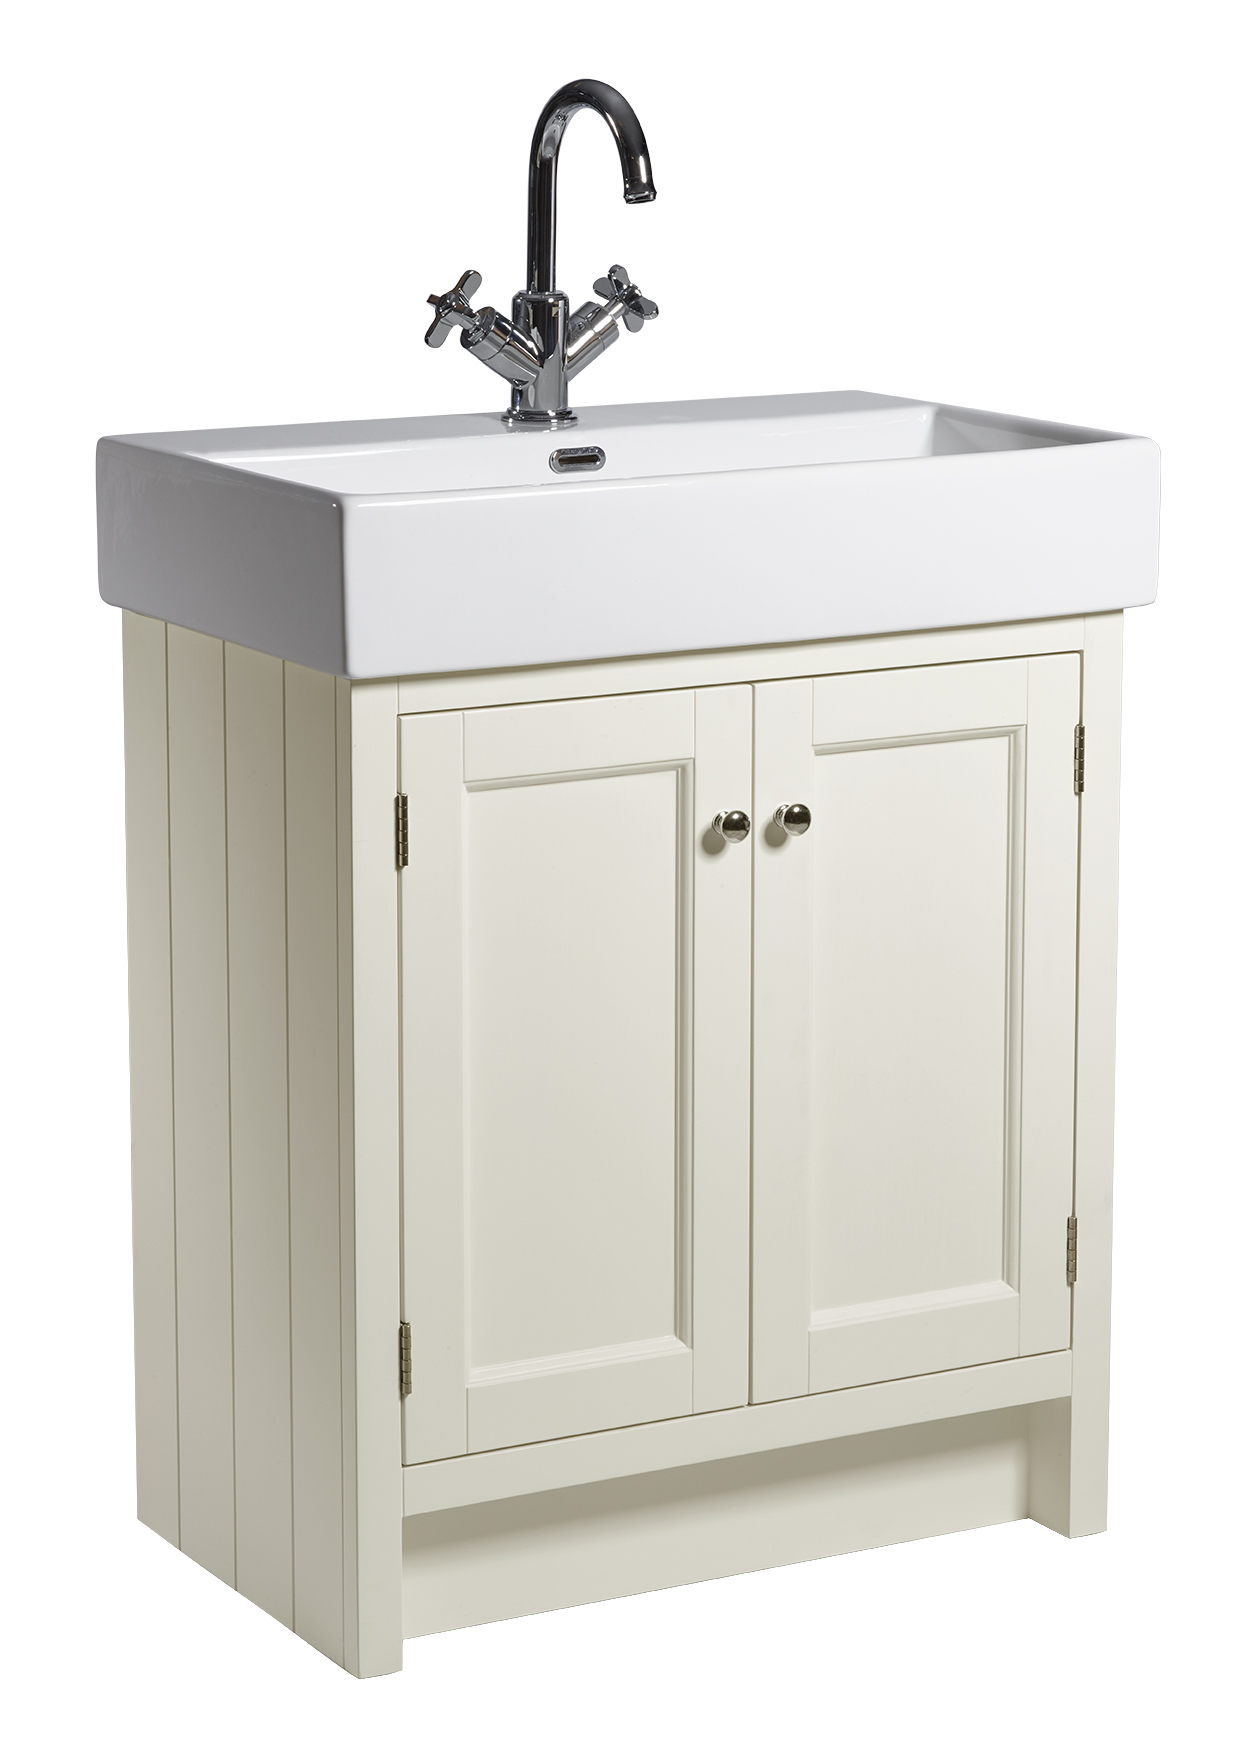 Roper Rhodes Hampton basin unit - Herts Bathrooms - Herts Bathrooms